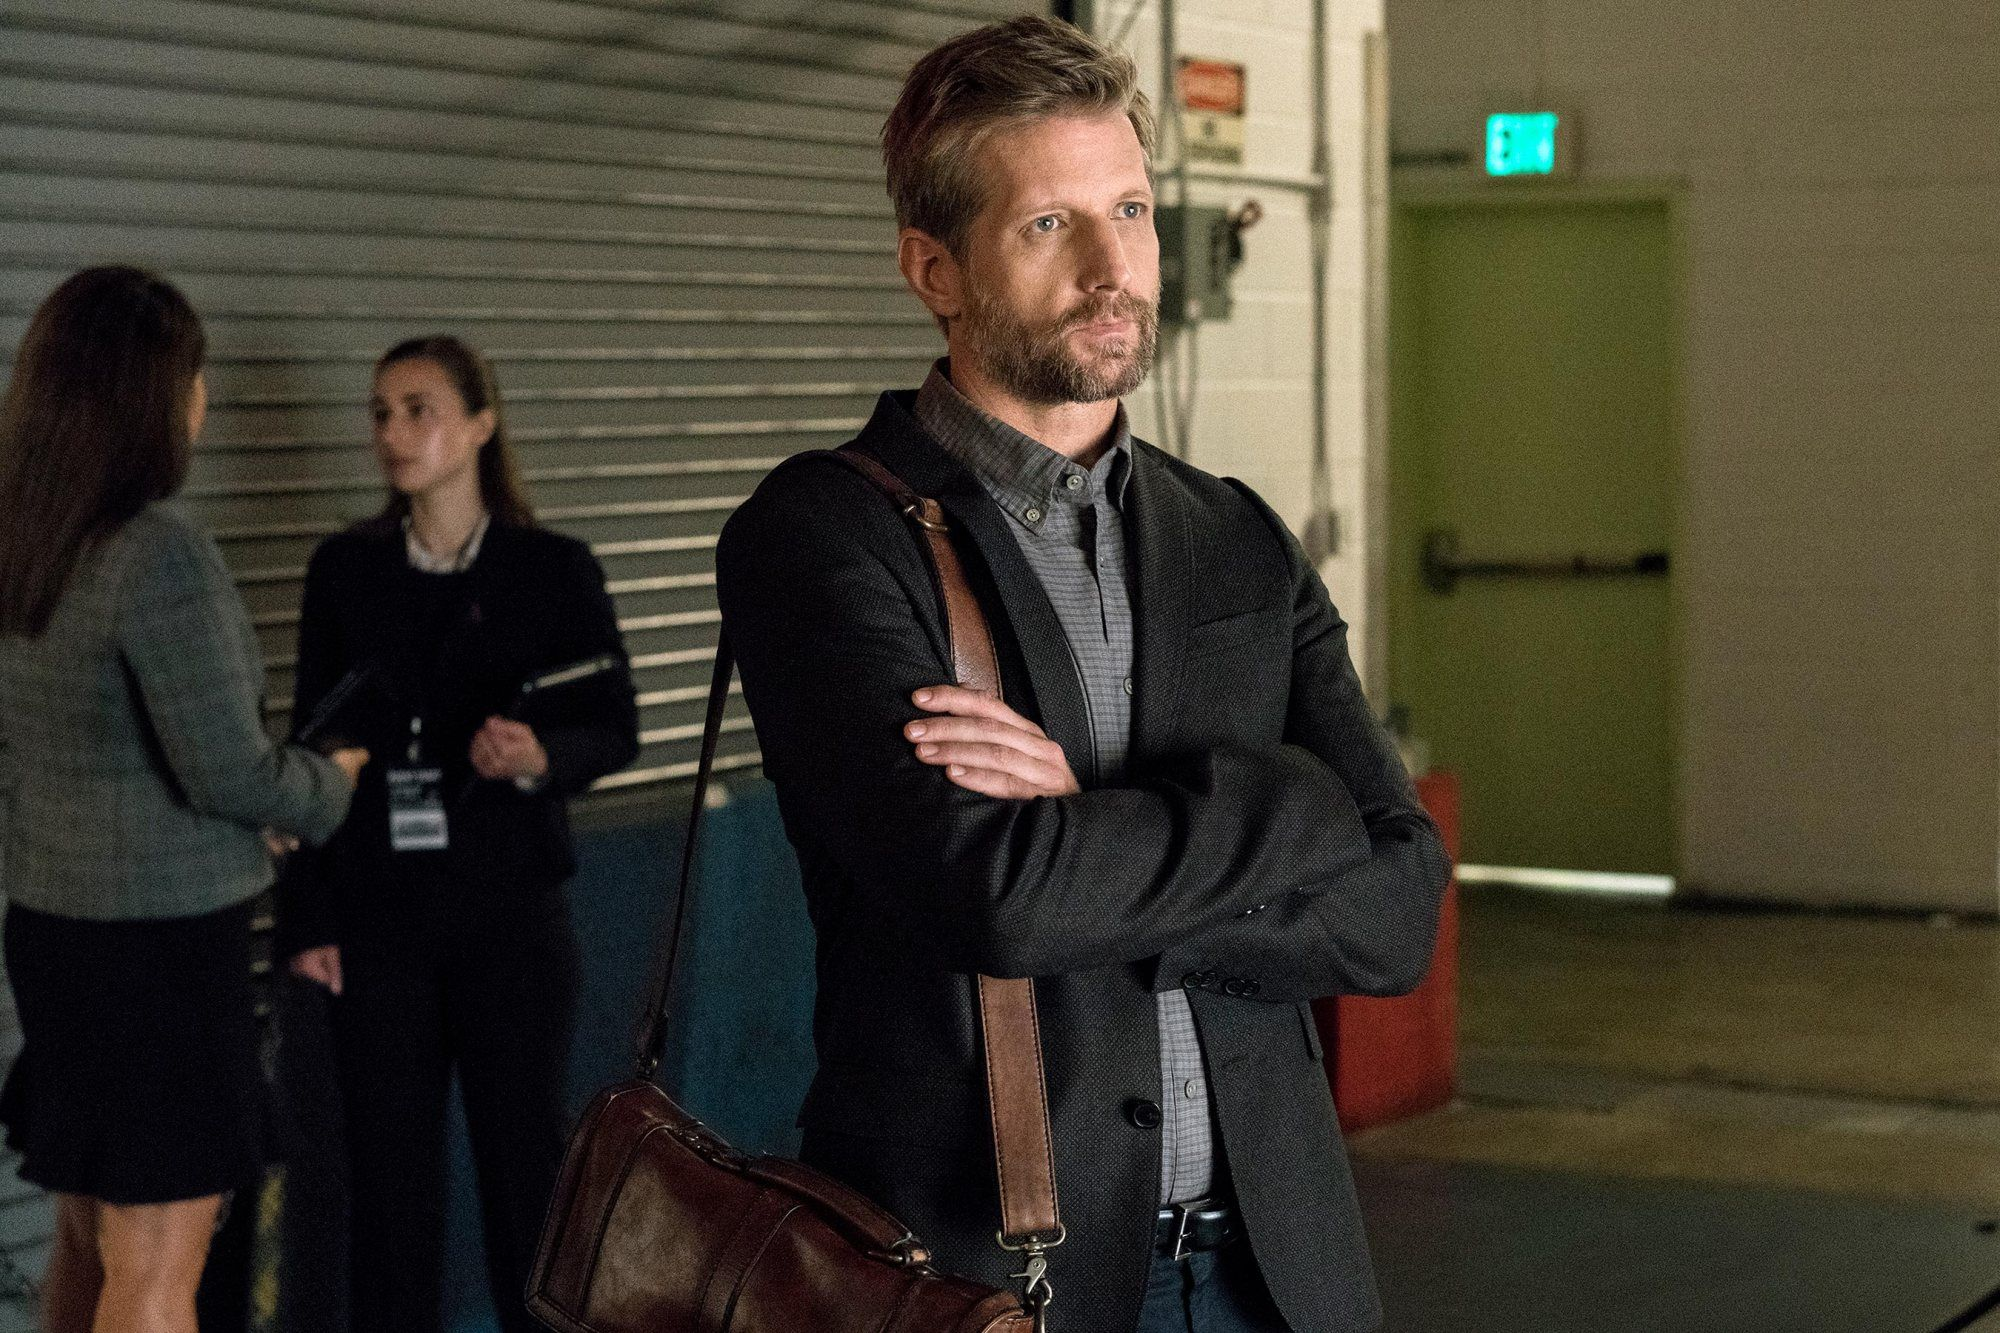 Tom Yates, played by Paul Sparks, acts on the set of House of Cards